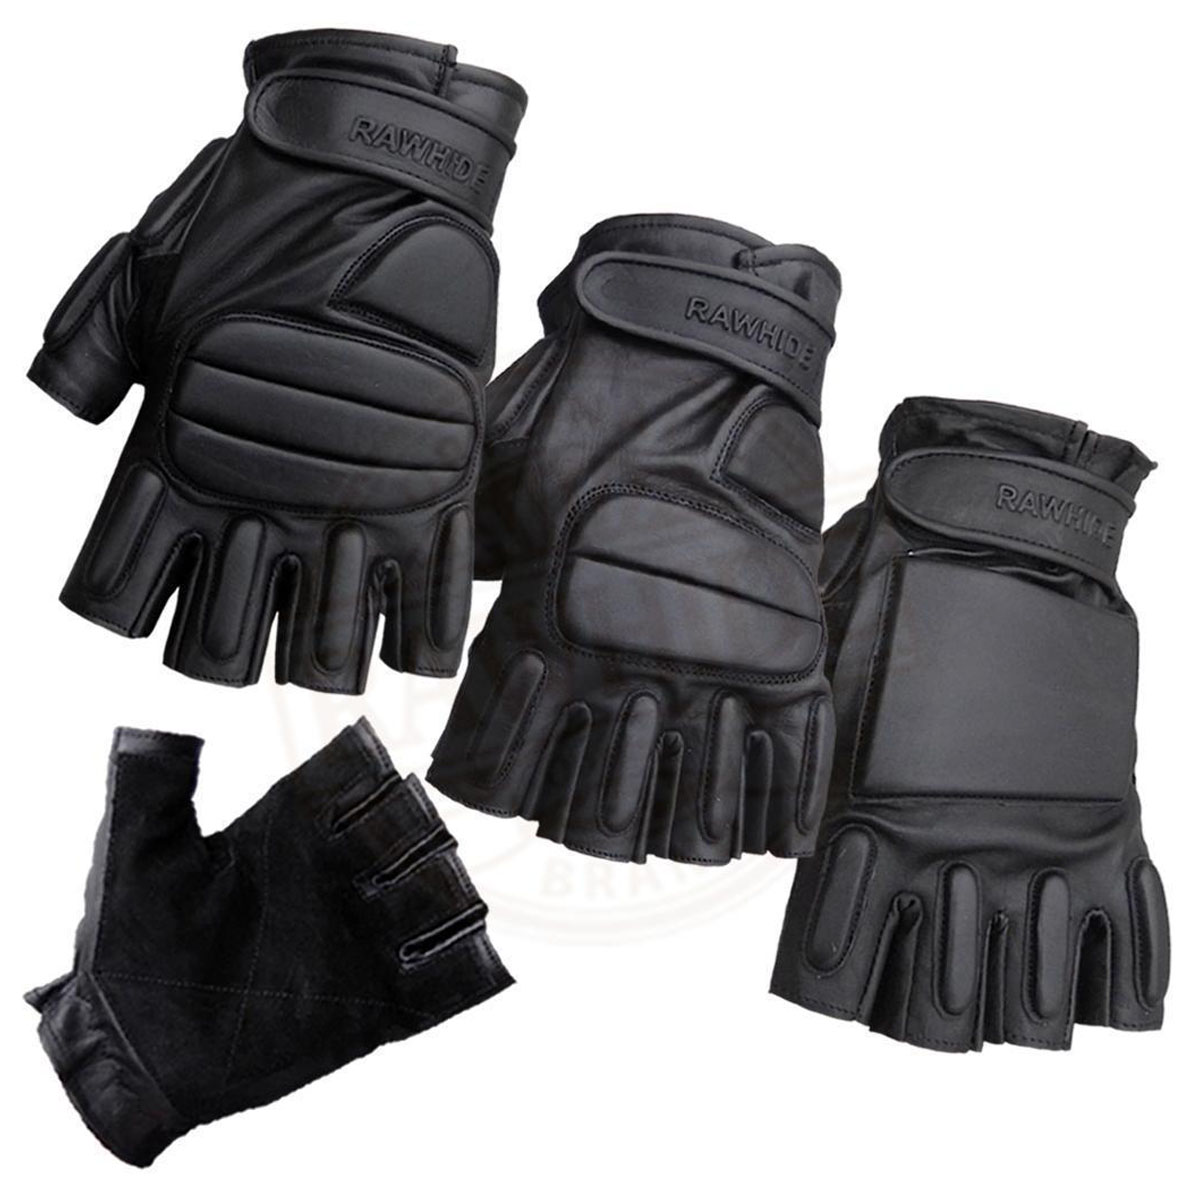 Driving gloves yahoo answers -  4 95